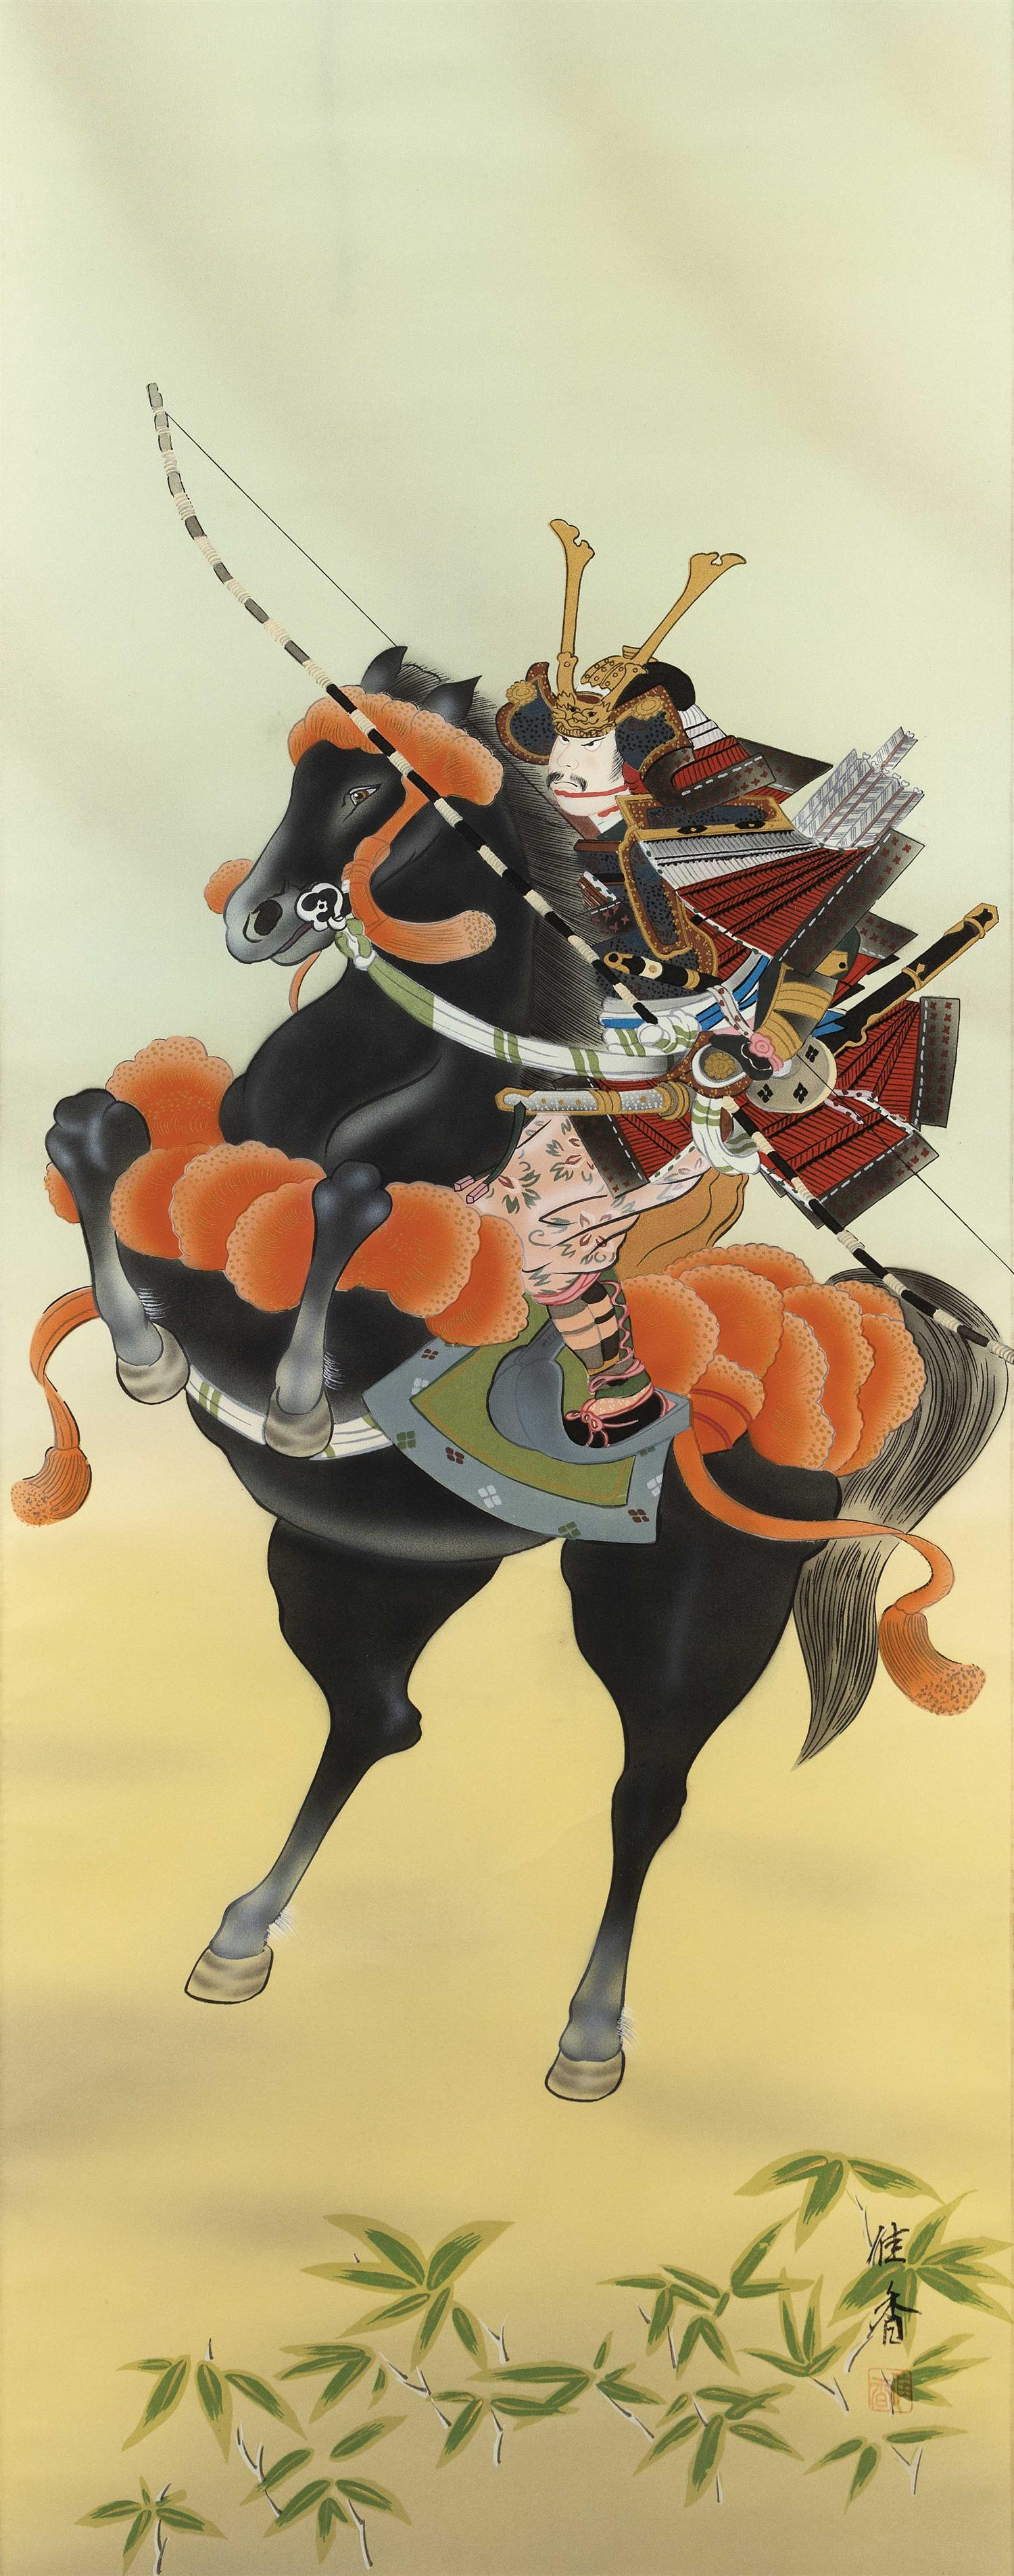 "JAPANESE SCROLL PAINTING ON SILK Depicts a mounted samurai. 40.5"" x 15.75"". Provenance: The Symmes / Shiro Kuma Collection."